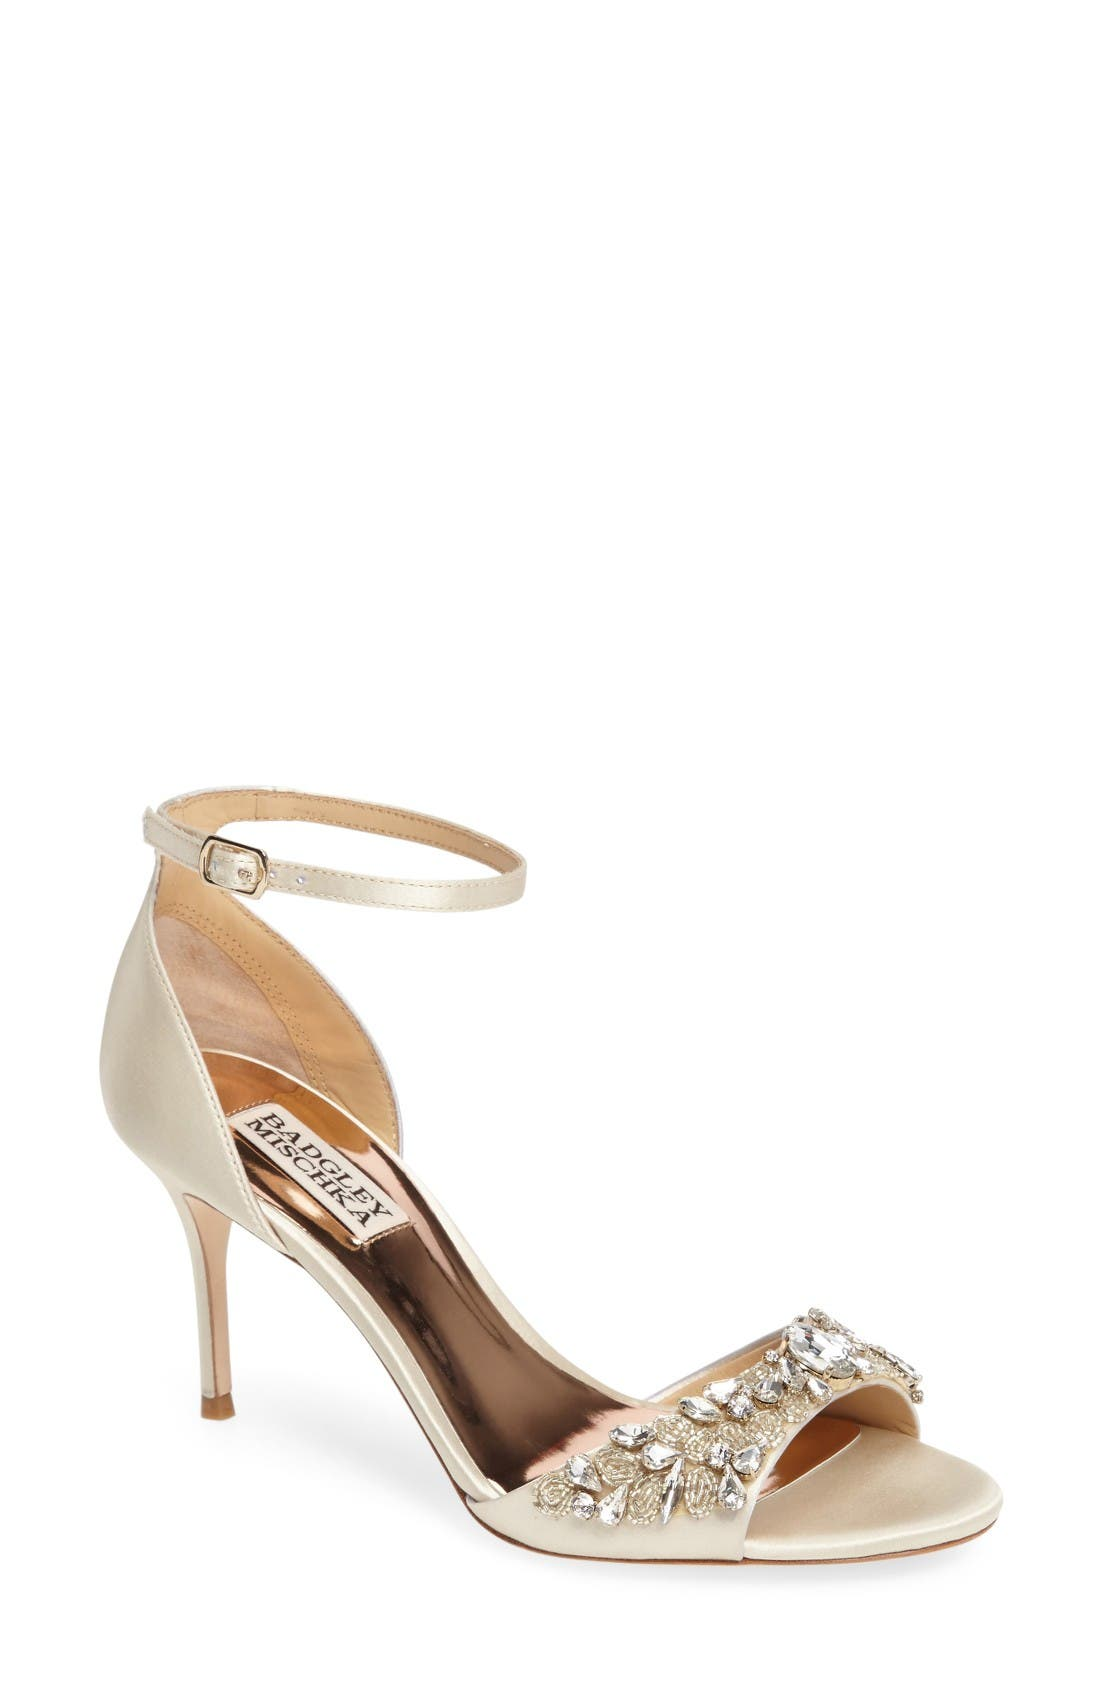 Badgley Mischka Bankston Sandal (Women)